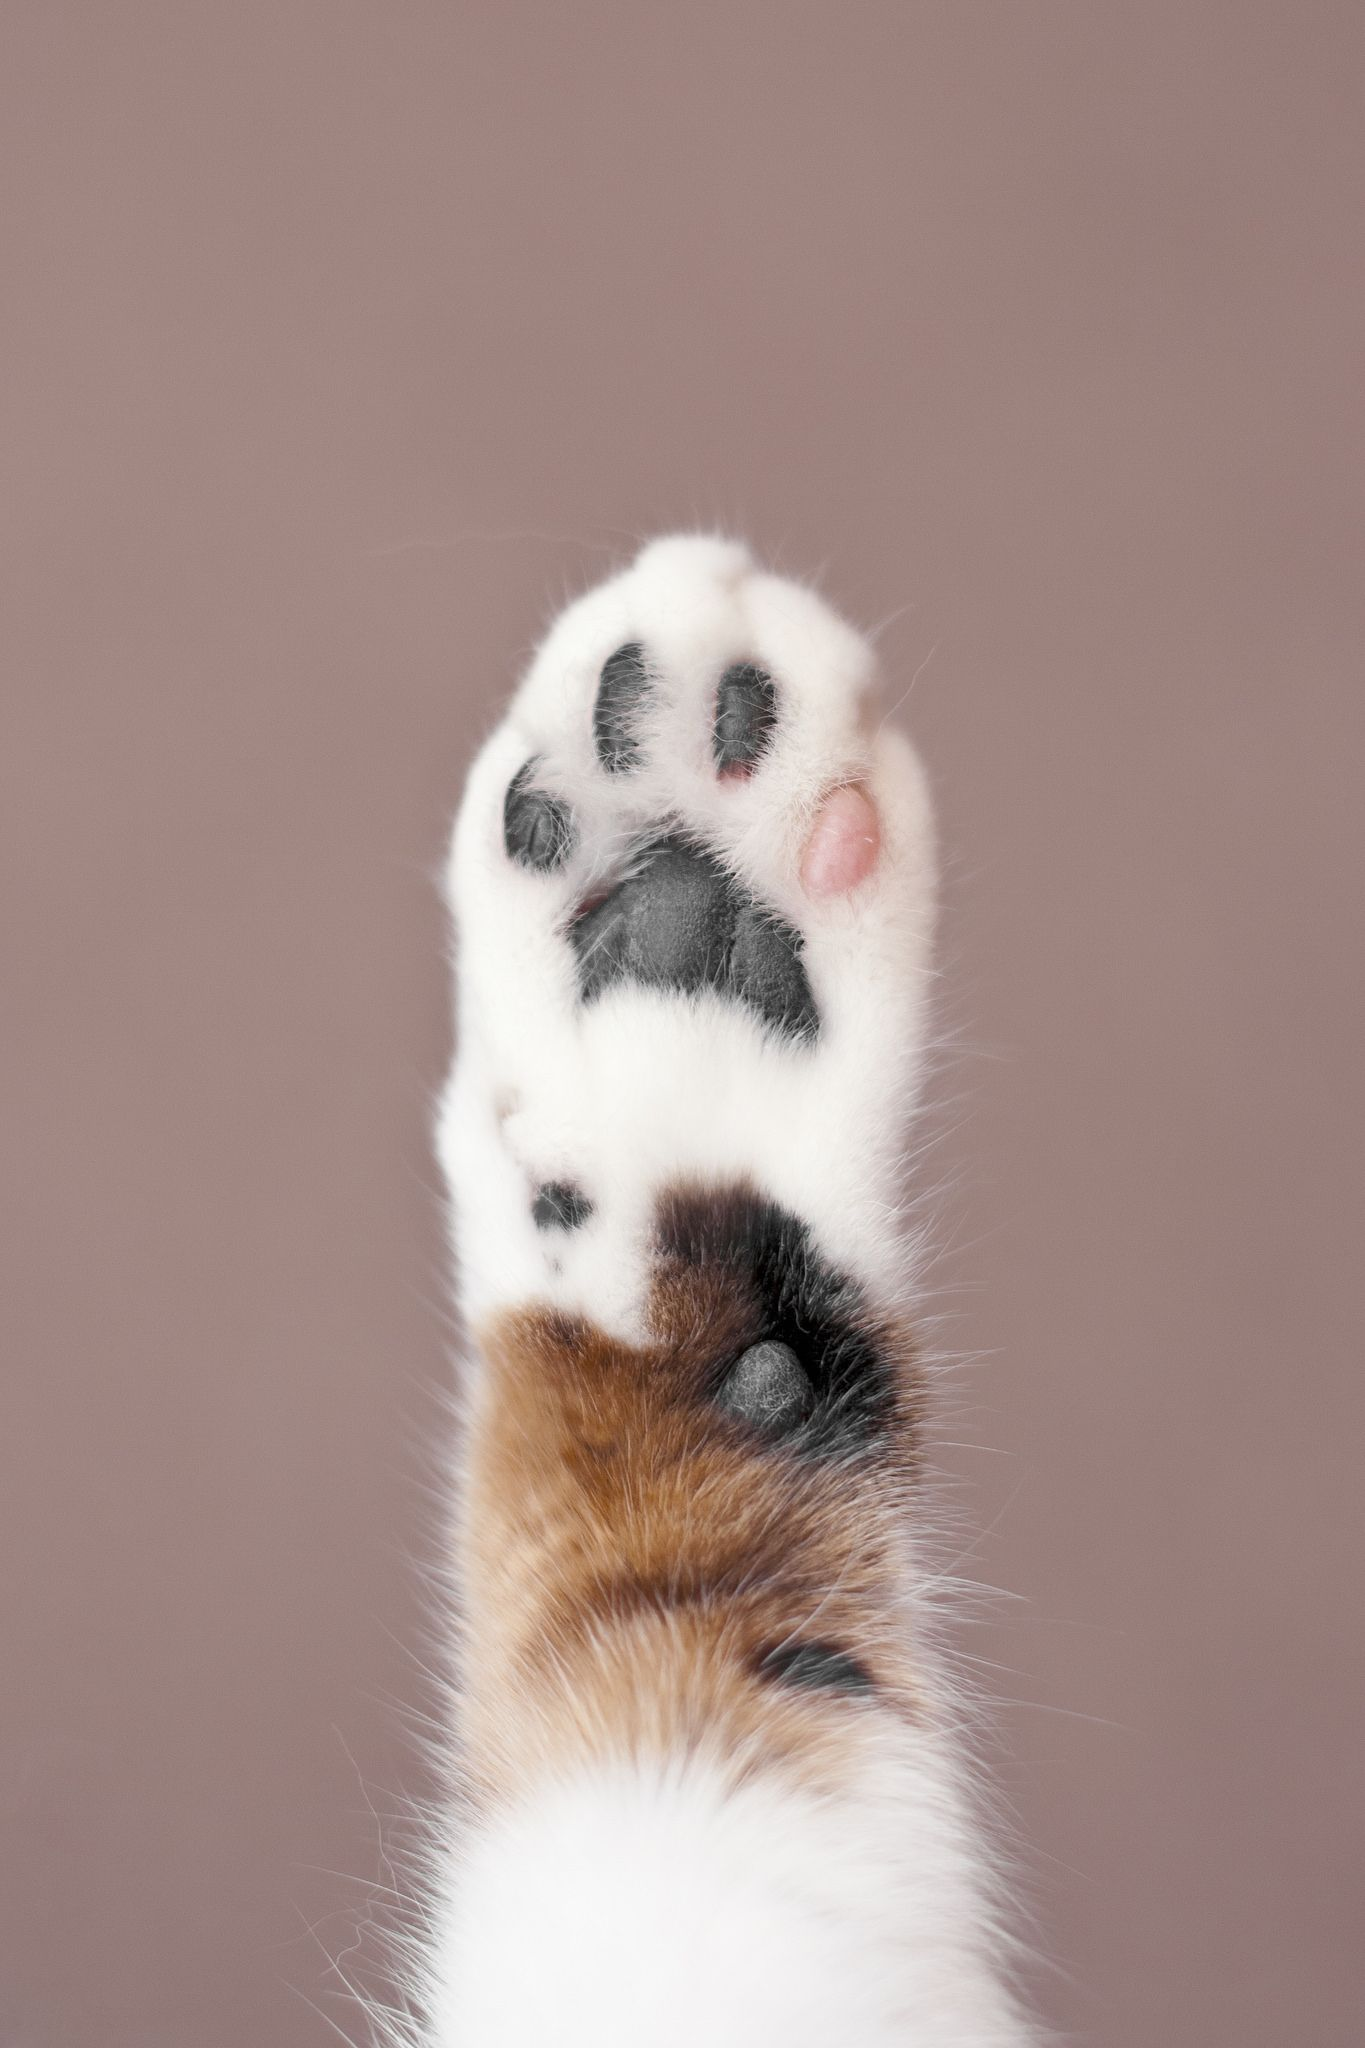 Raise Your Hand If You Love Crunchies Cats Crazy Cats Cat Paws